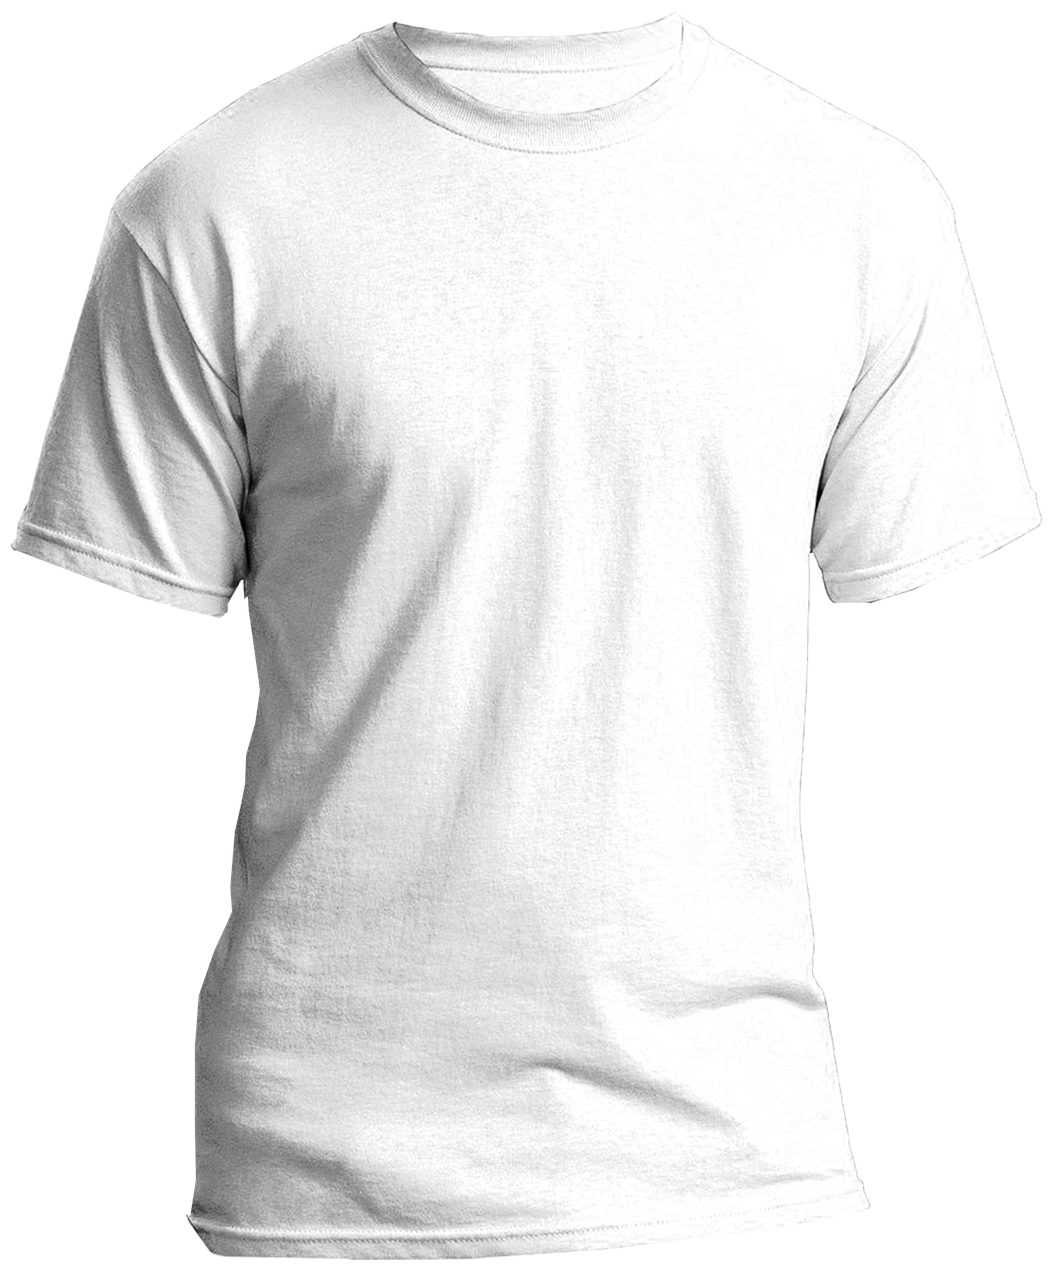 How To Create Your Own Personalized T Shirts